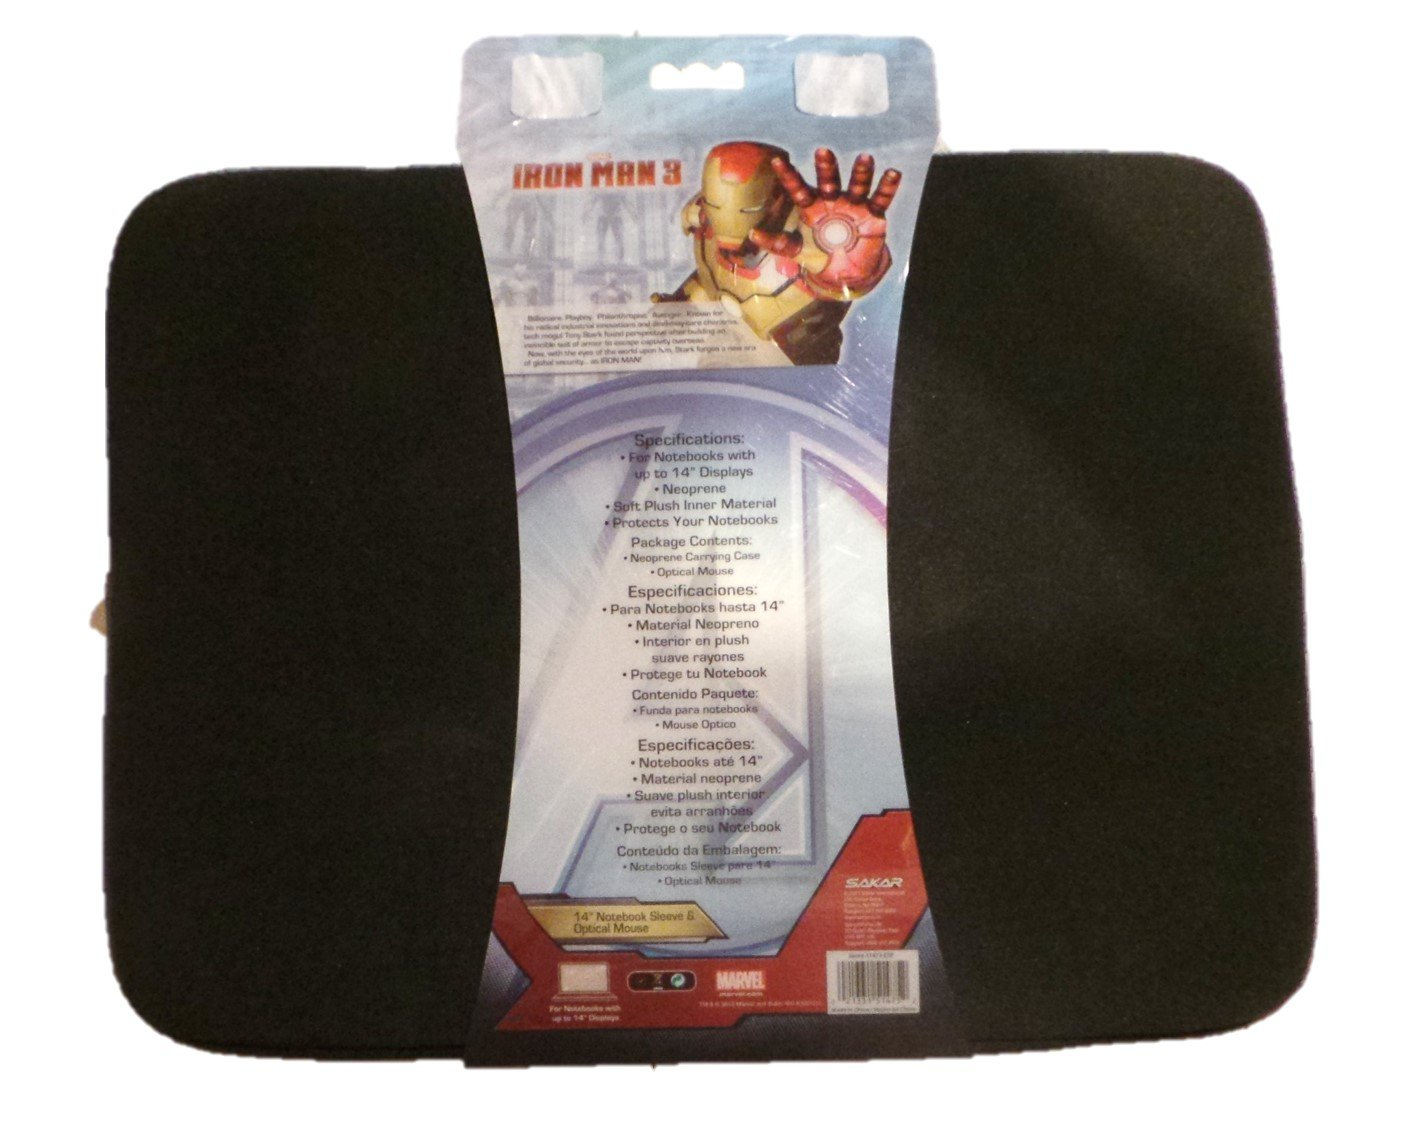 Amazon.com: Iron Man 3 Neoprene Sleeve with Optical Mouse Fits Up to 14 Inch Notebook or Tablet: Computers & Accessories